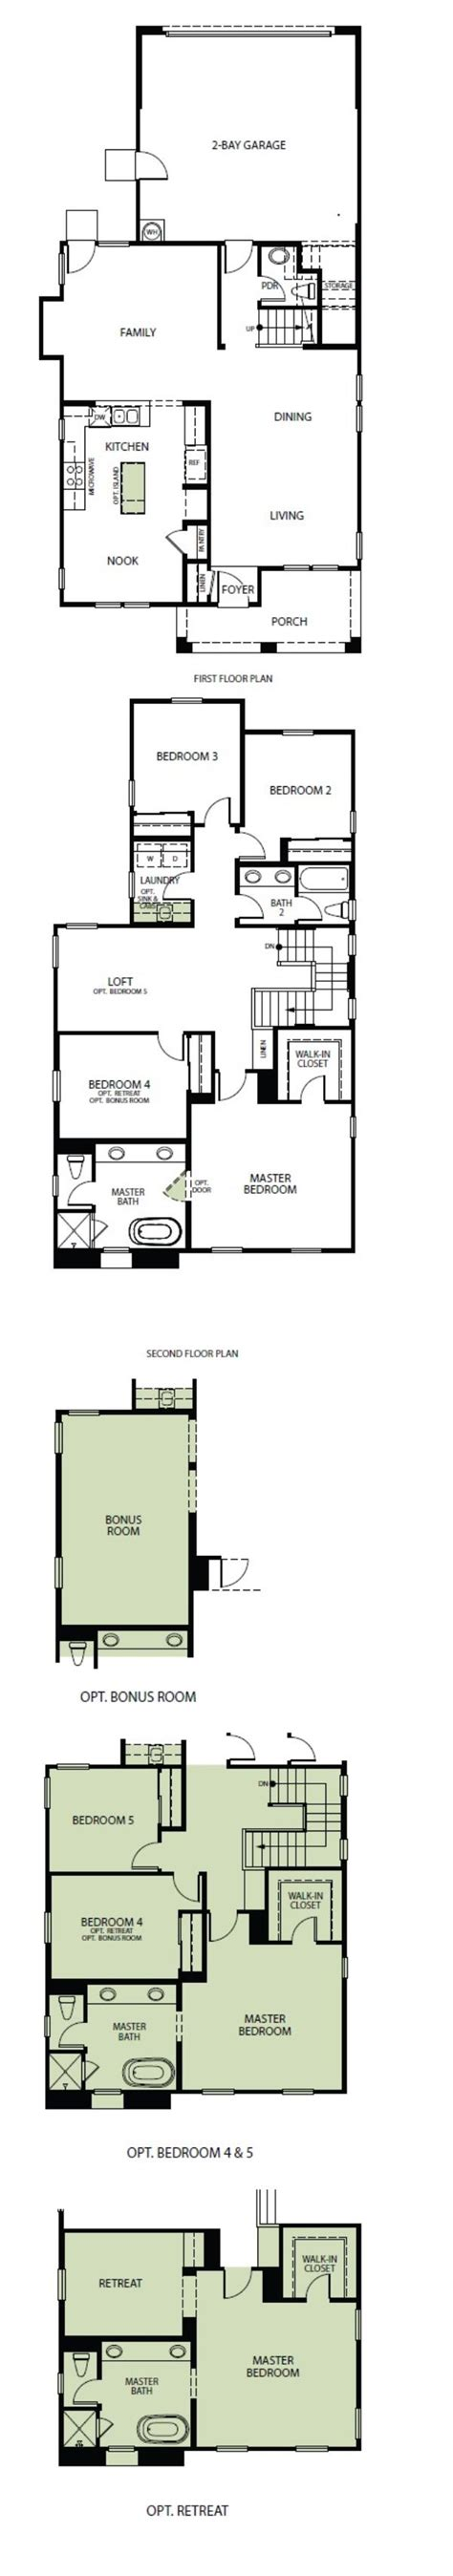 woodside homes floor plans plan 4 model 3 bedroom 2 5 bath new home in sacramento